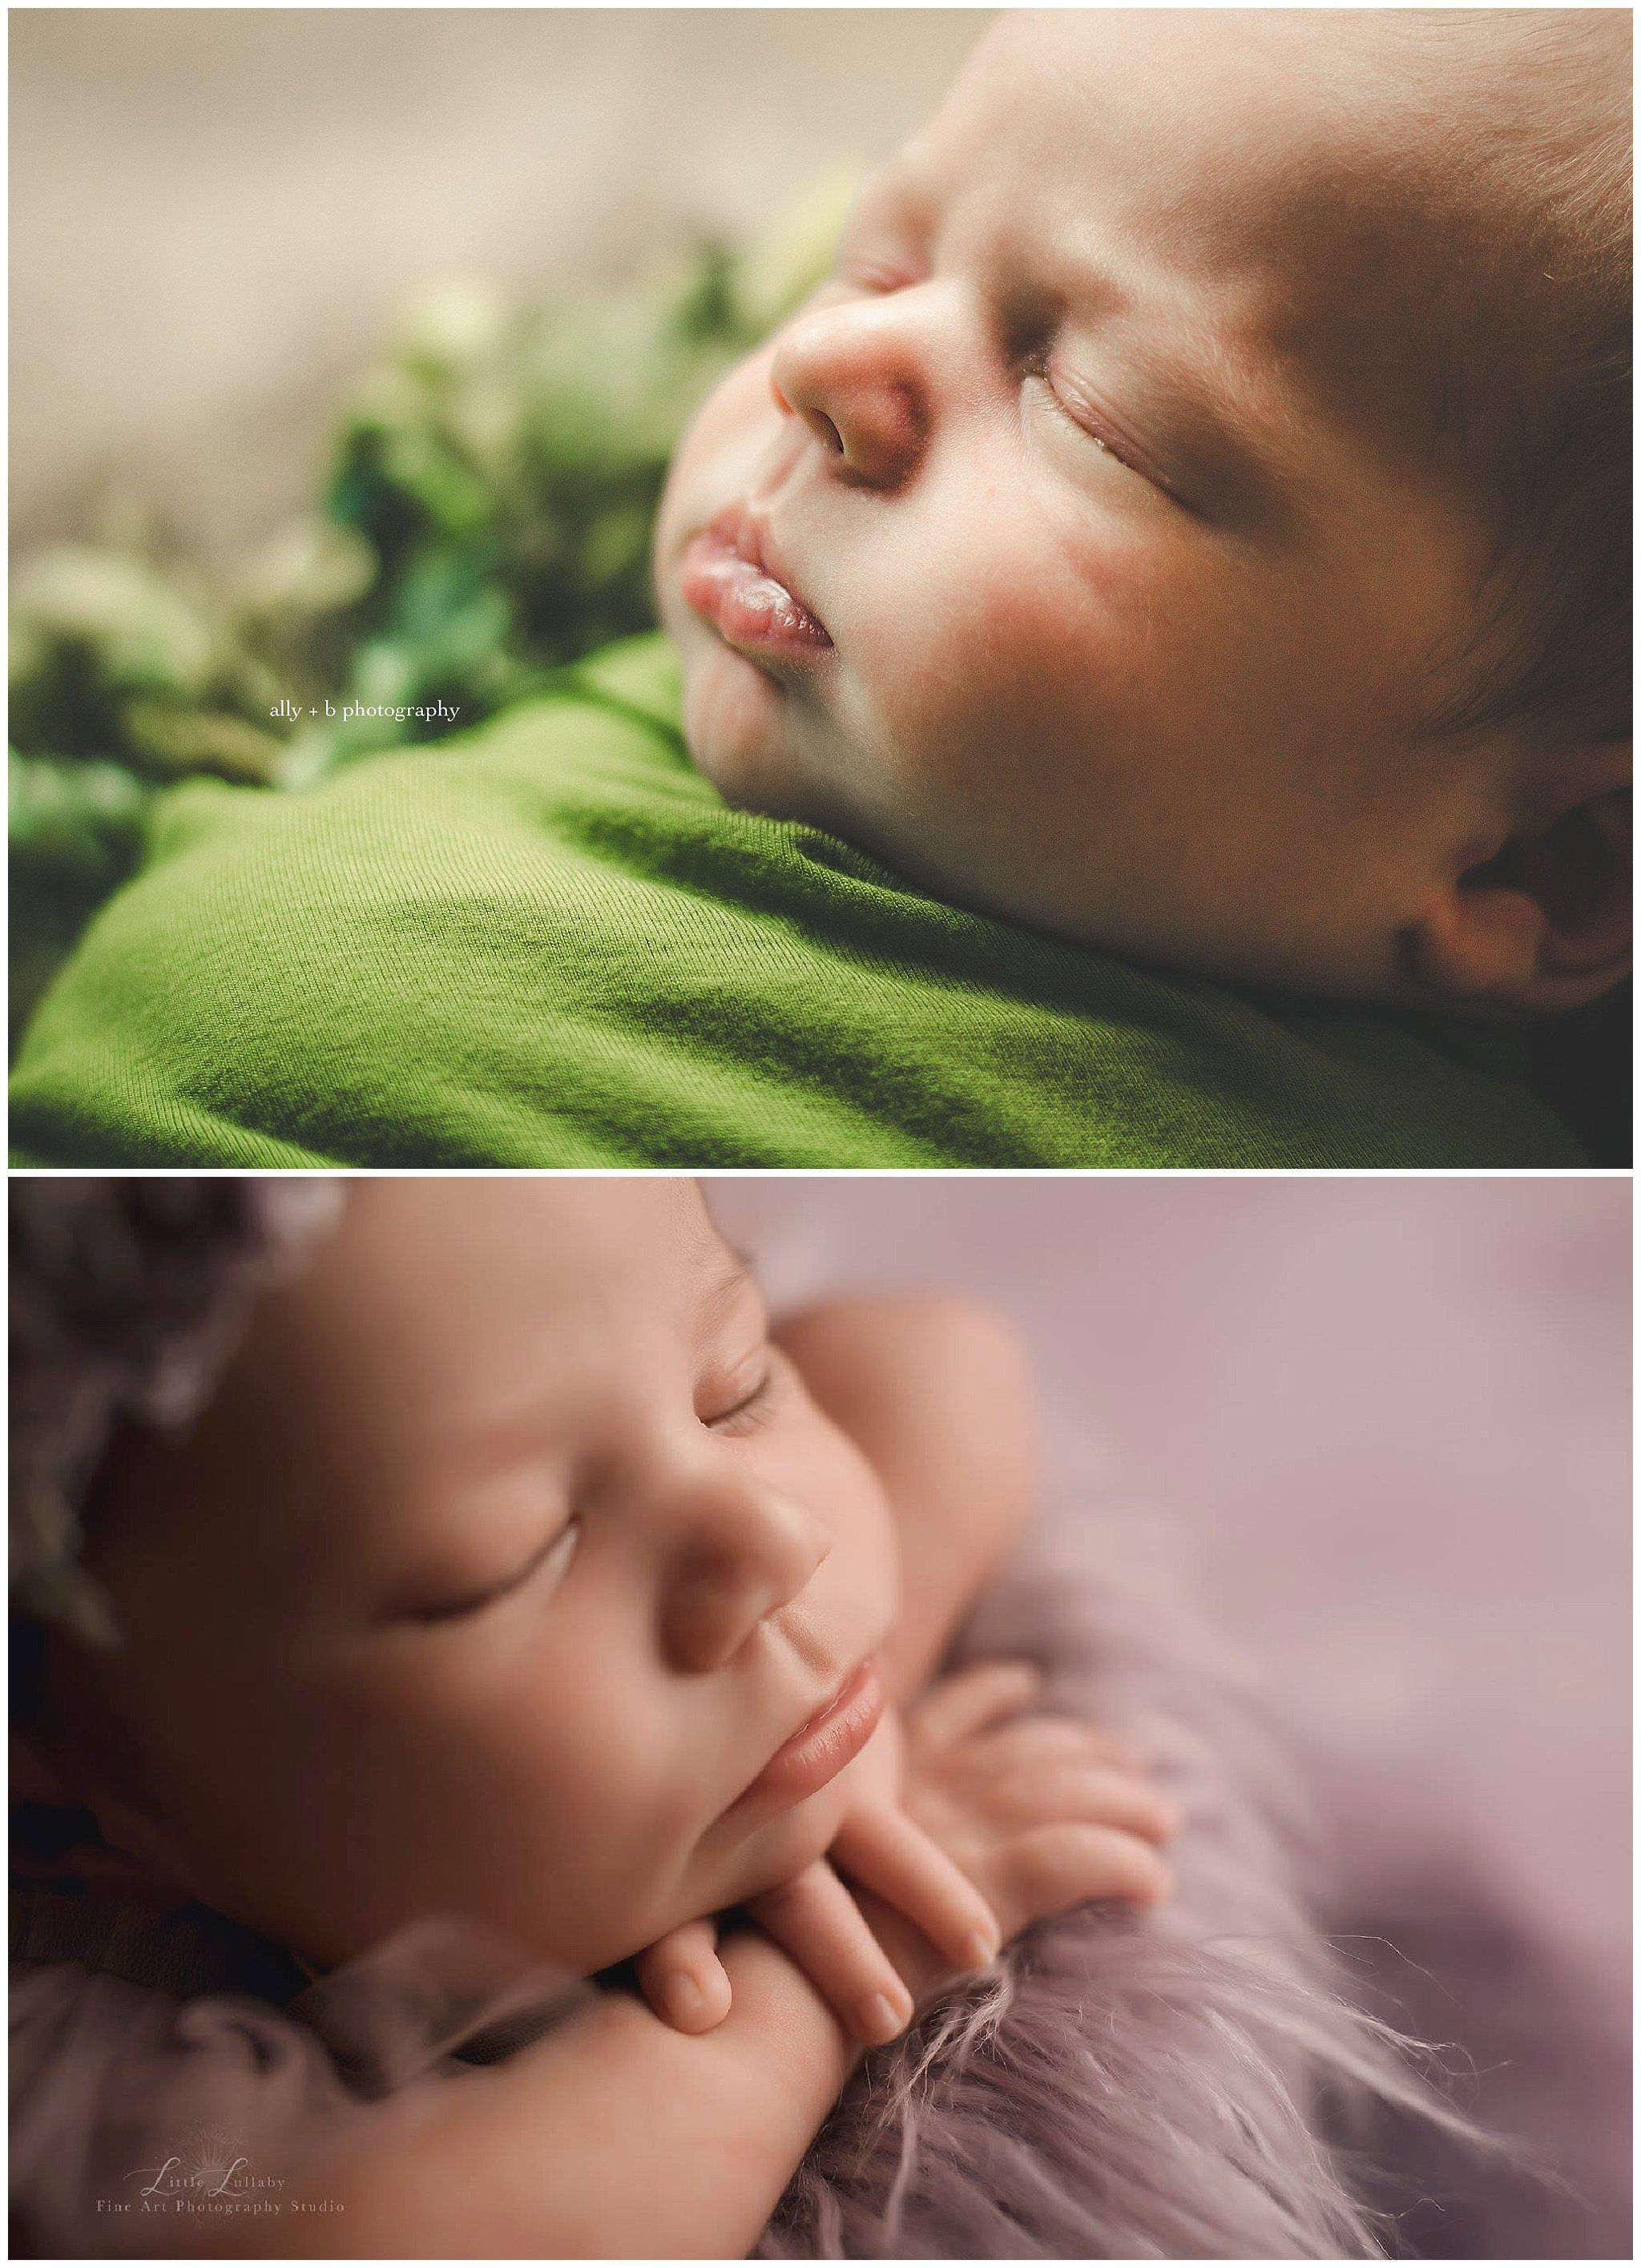 Posing ideas for newborn macro photography the newborn macro image is how this rule translates in the world of newborn photography